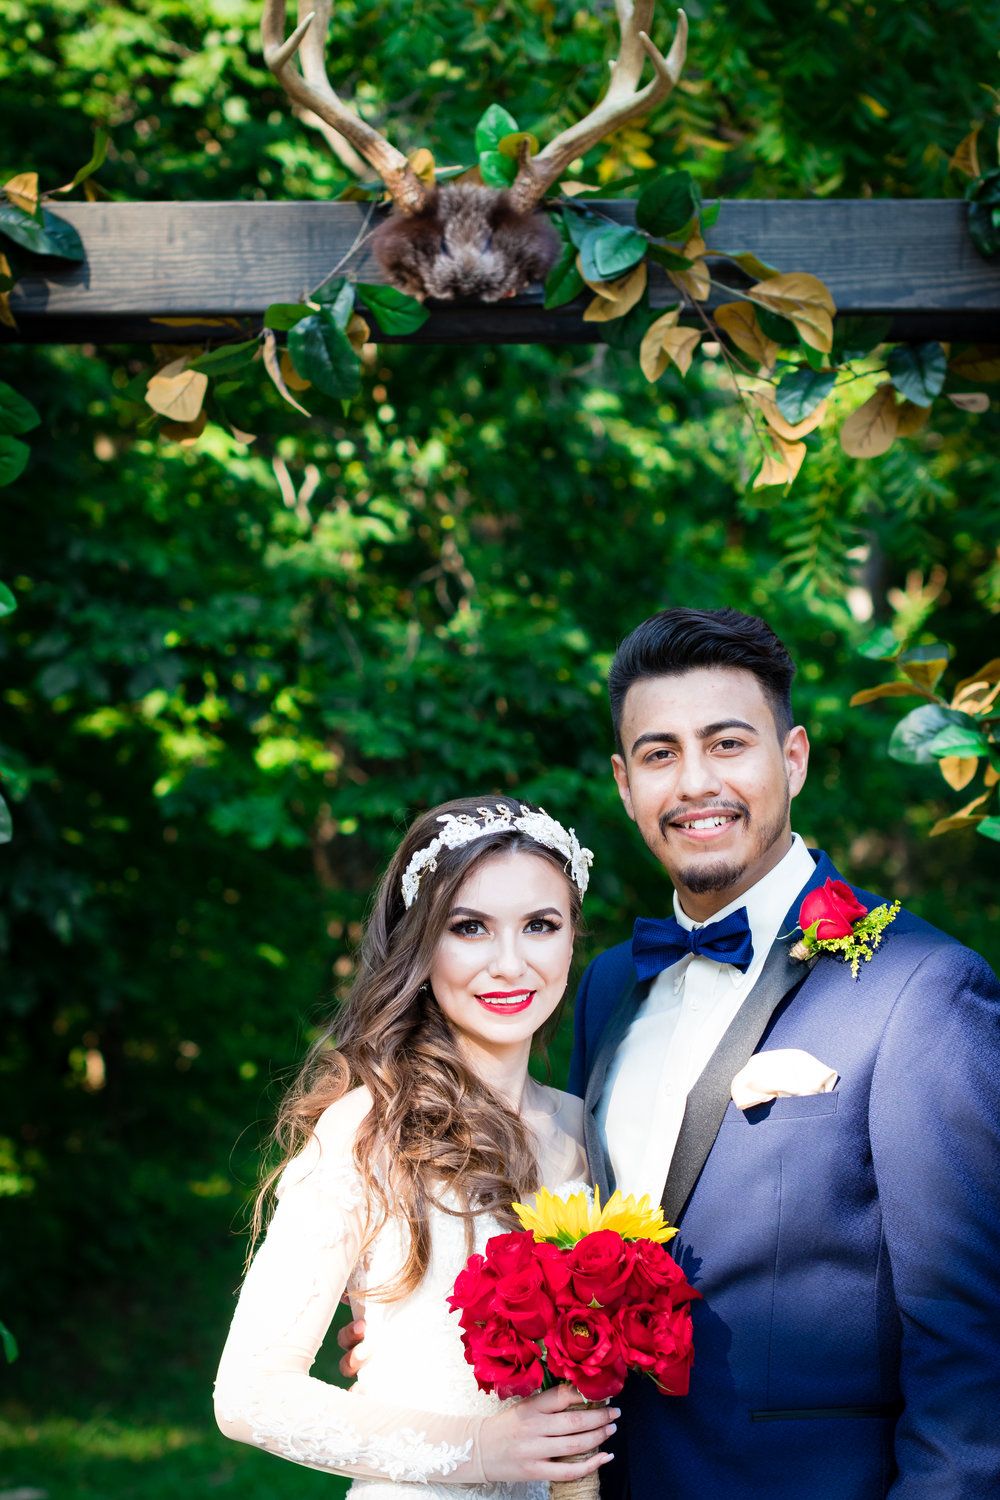 Weddings - Newly-Wed Portraits 2